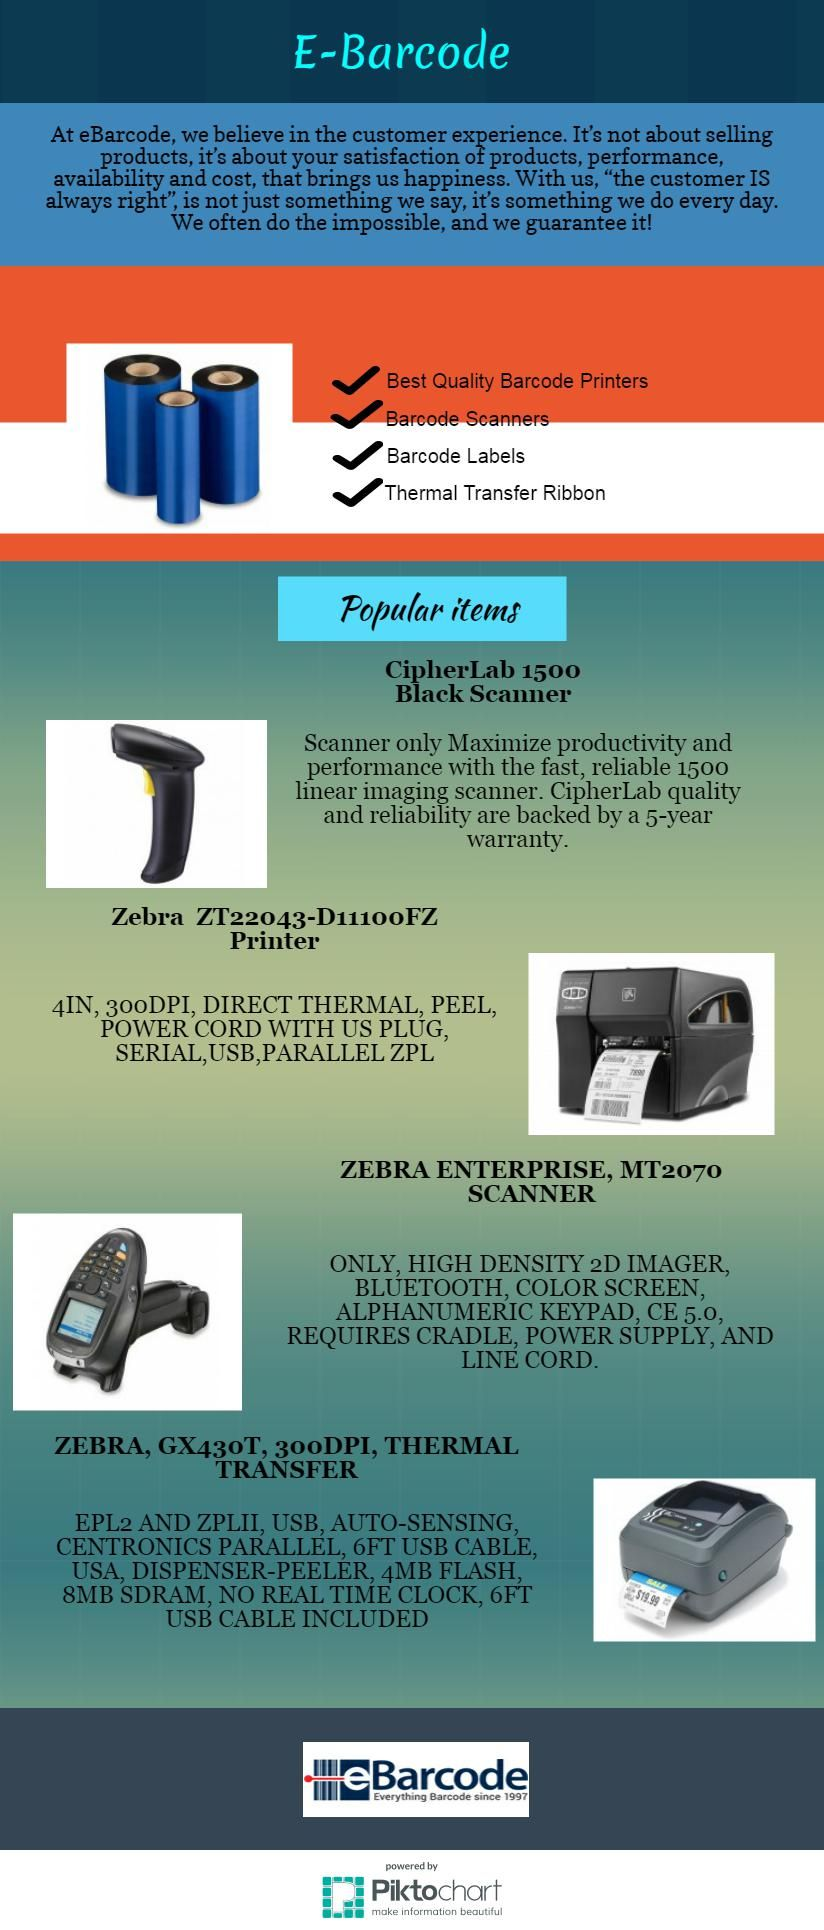 Find here huge collection of barcode supplies and many